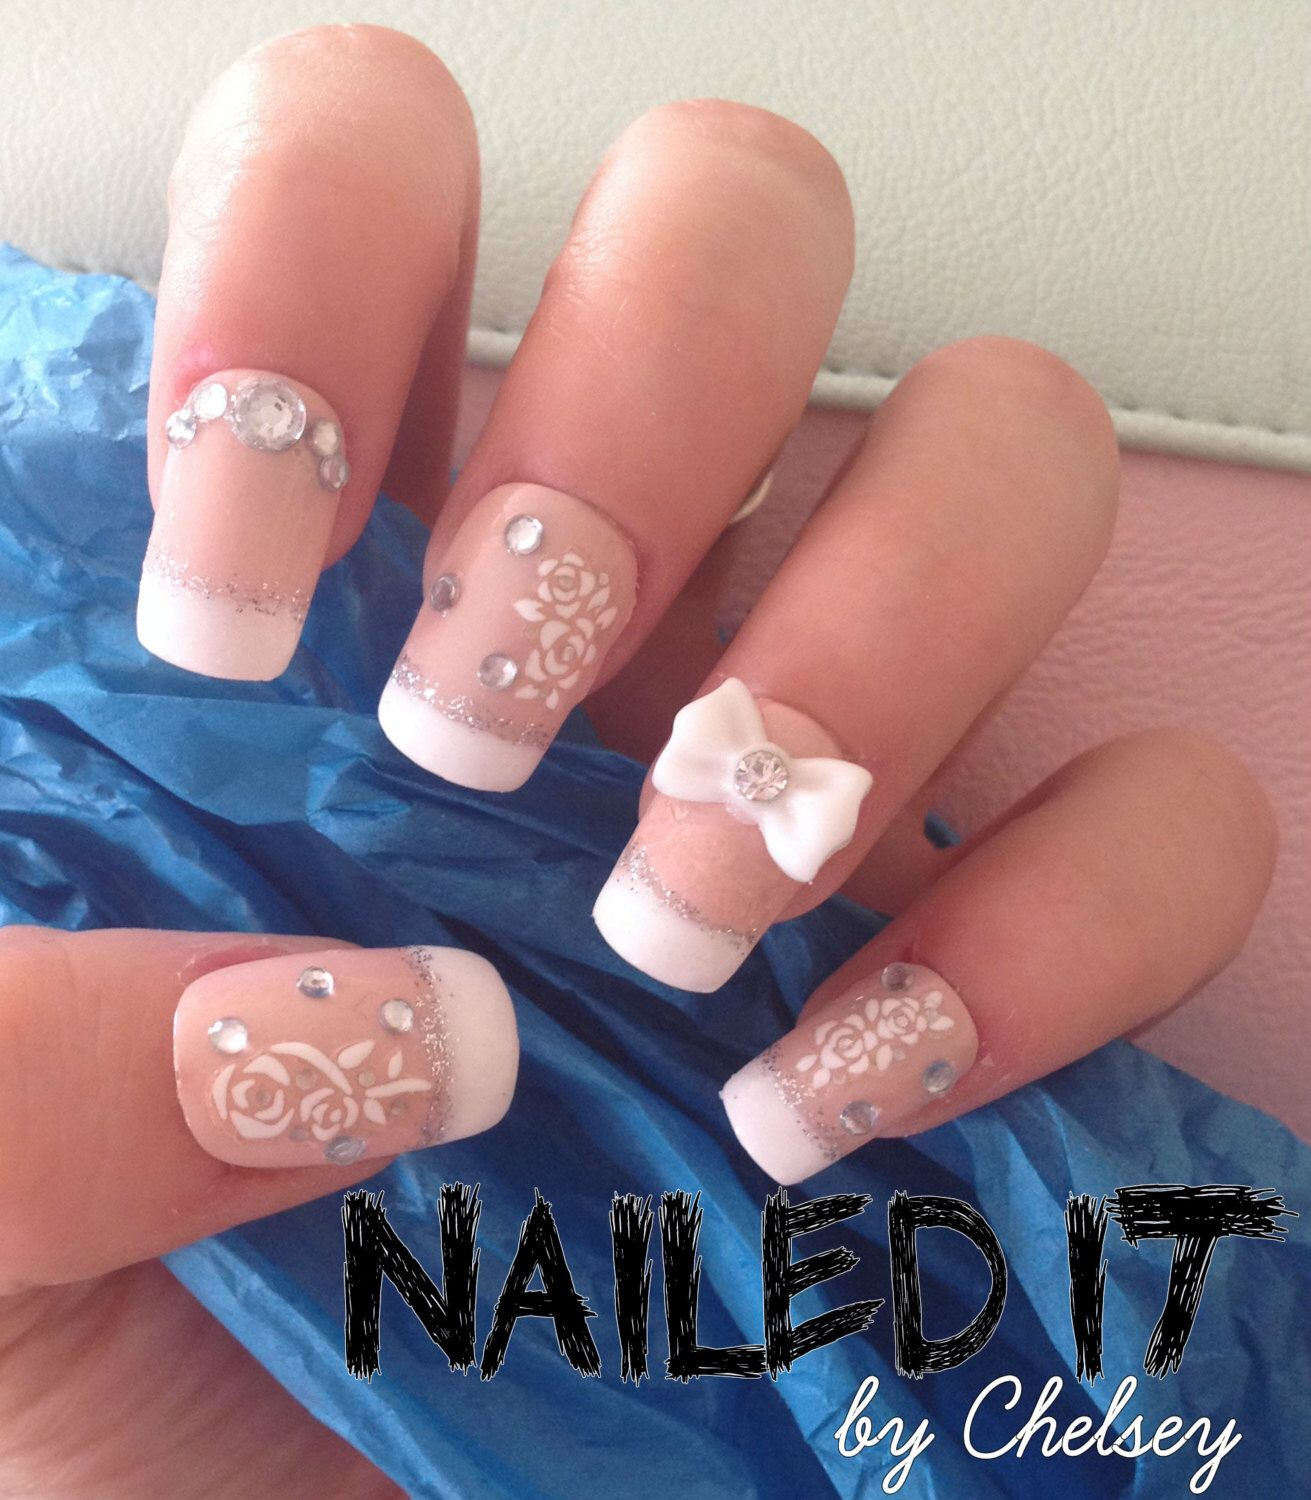 NAILED IT! - Hand painted false nails - 3D french manicure - white flower decals, bow, crystals! by NailedItByChelsey on Etsy https://www.etsy.com/listing/197619313/nailed-it-hand-painted-false-nails-3d